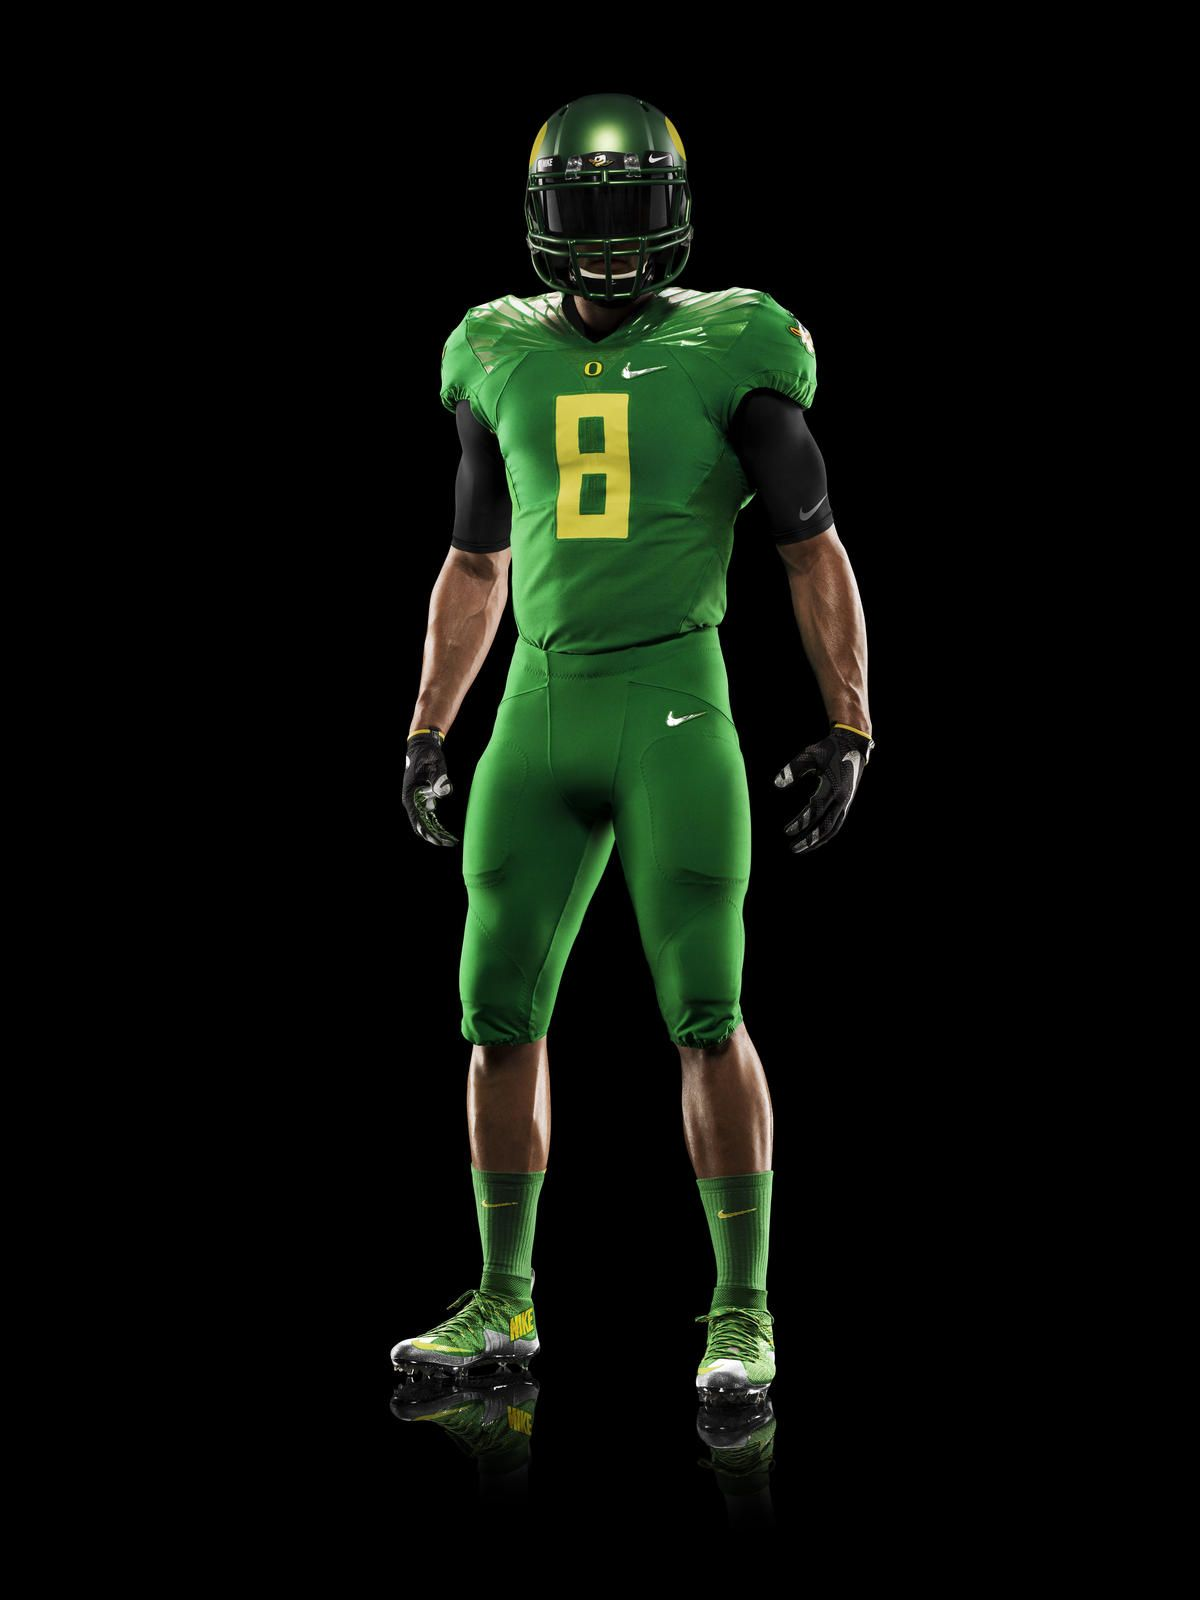 Nike Reveals College Football Playoff Uniforms to be Worn During ... 1e631a5c9